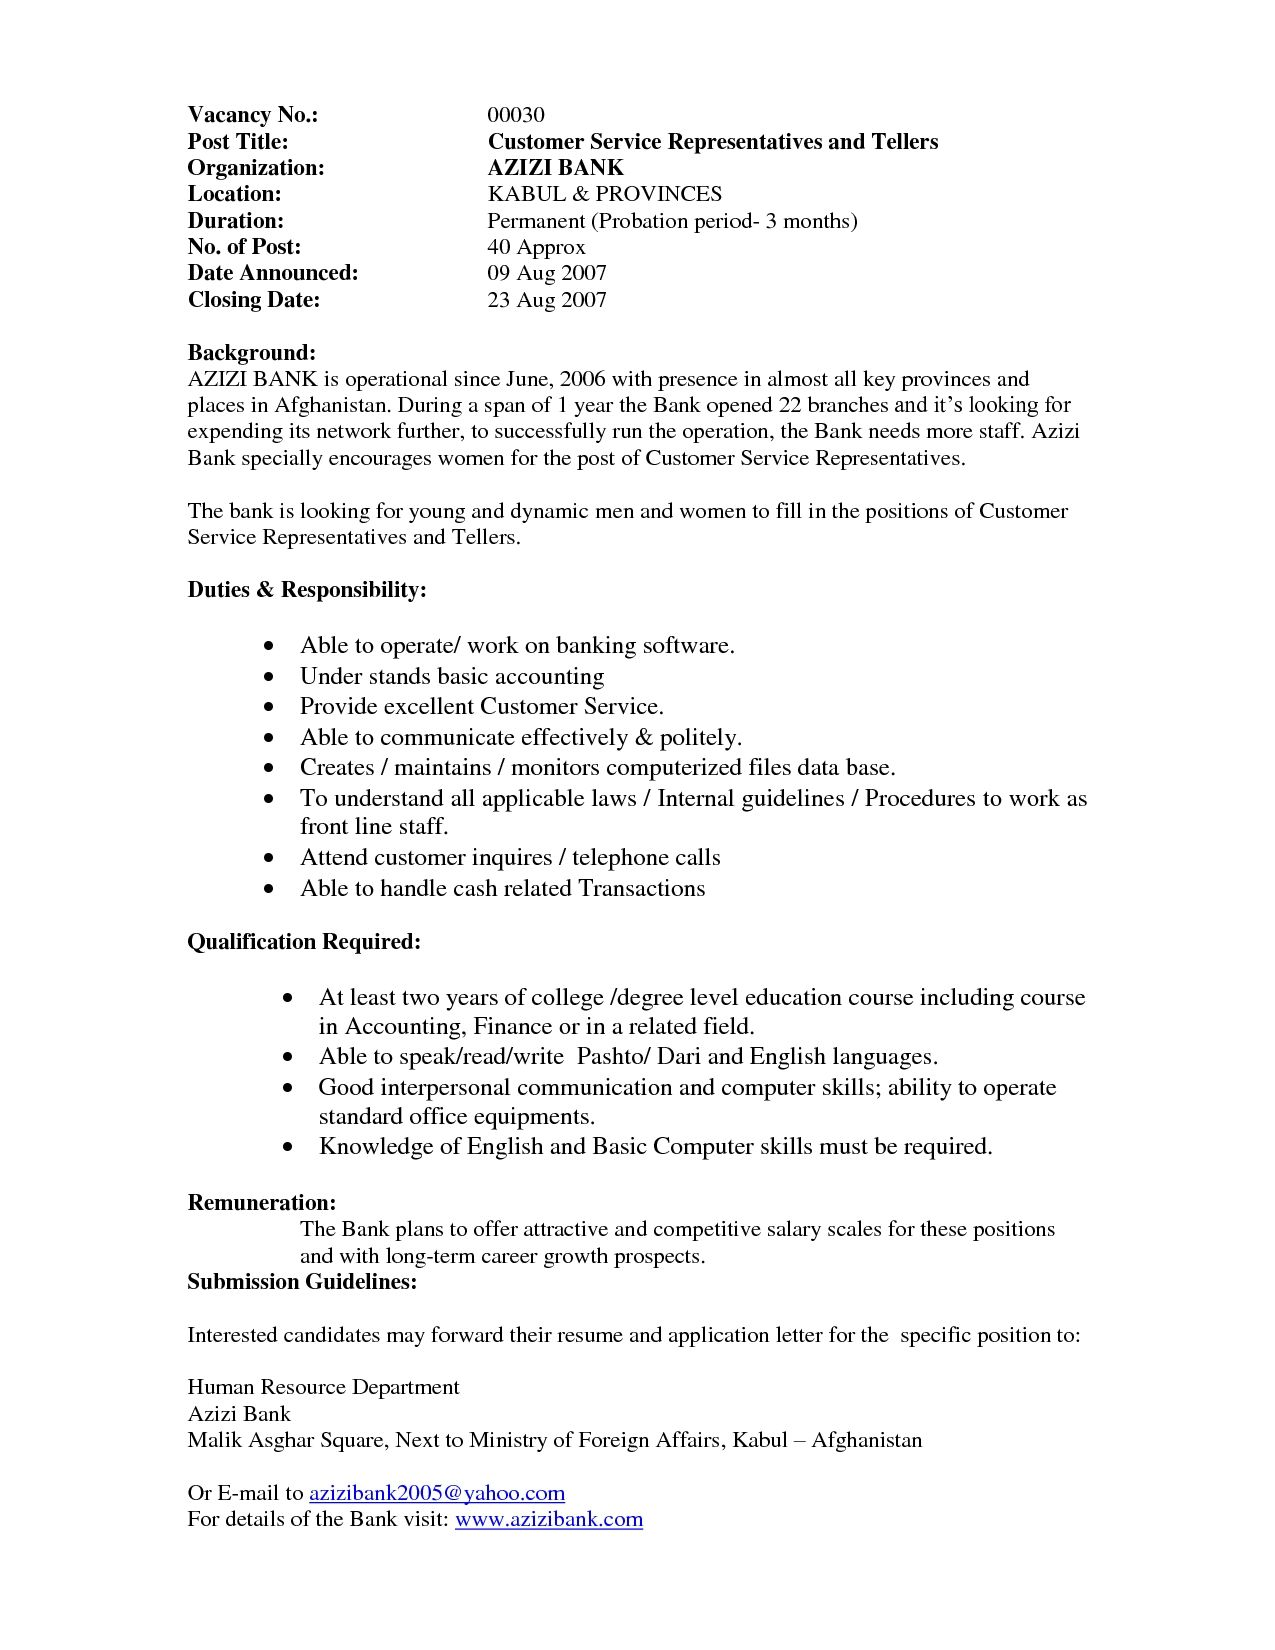 Cashier Description For Resume Gallery Resume Job Cashier Example Good Chef Examples Bank Teller